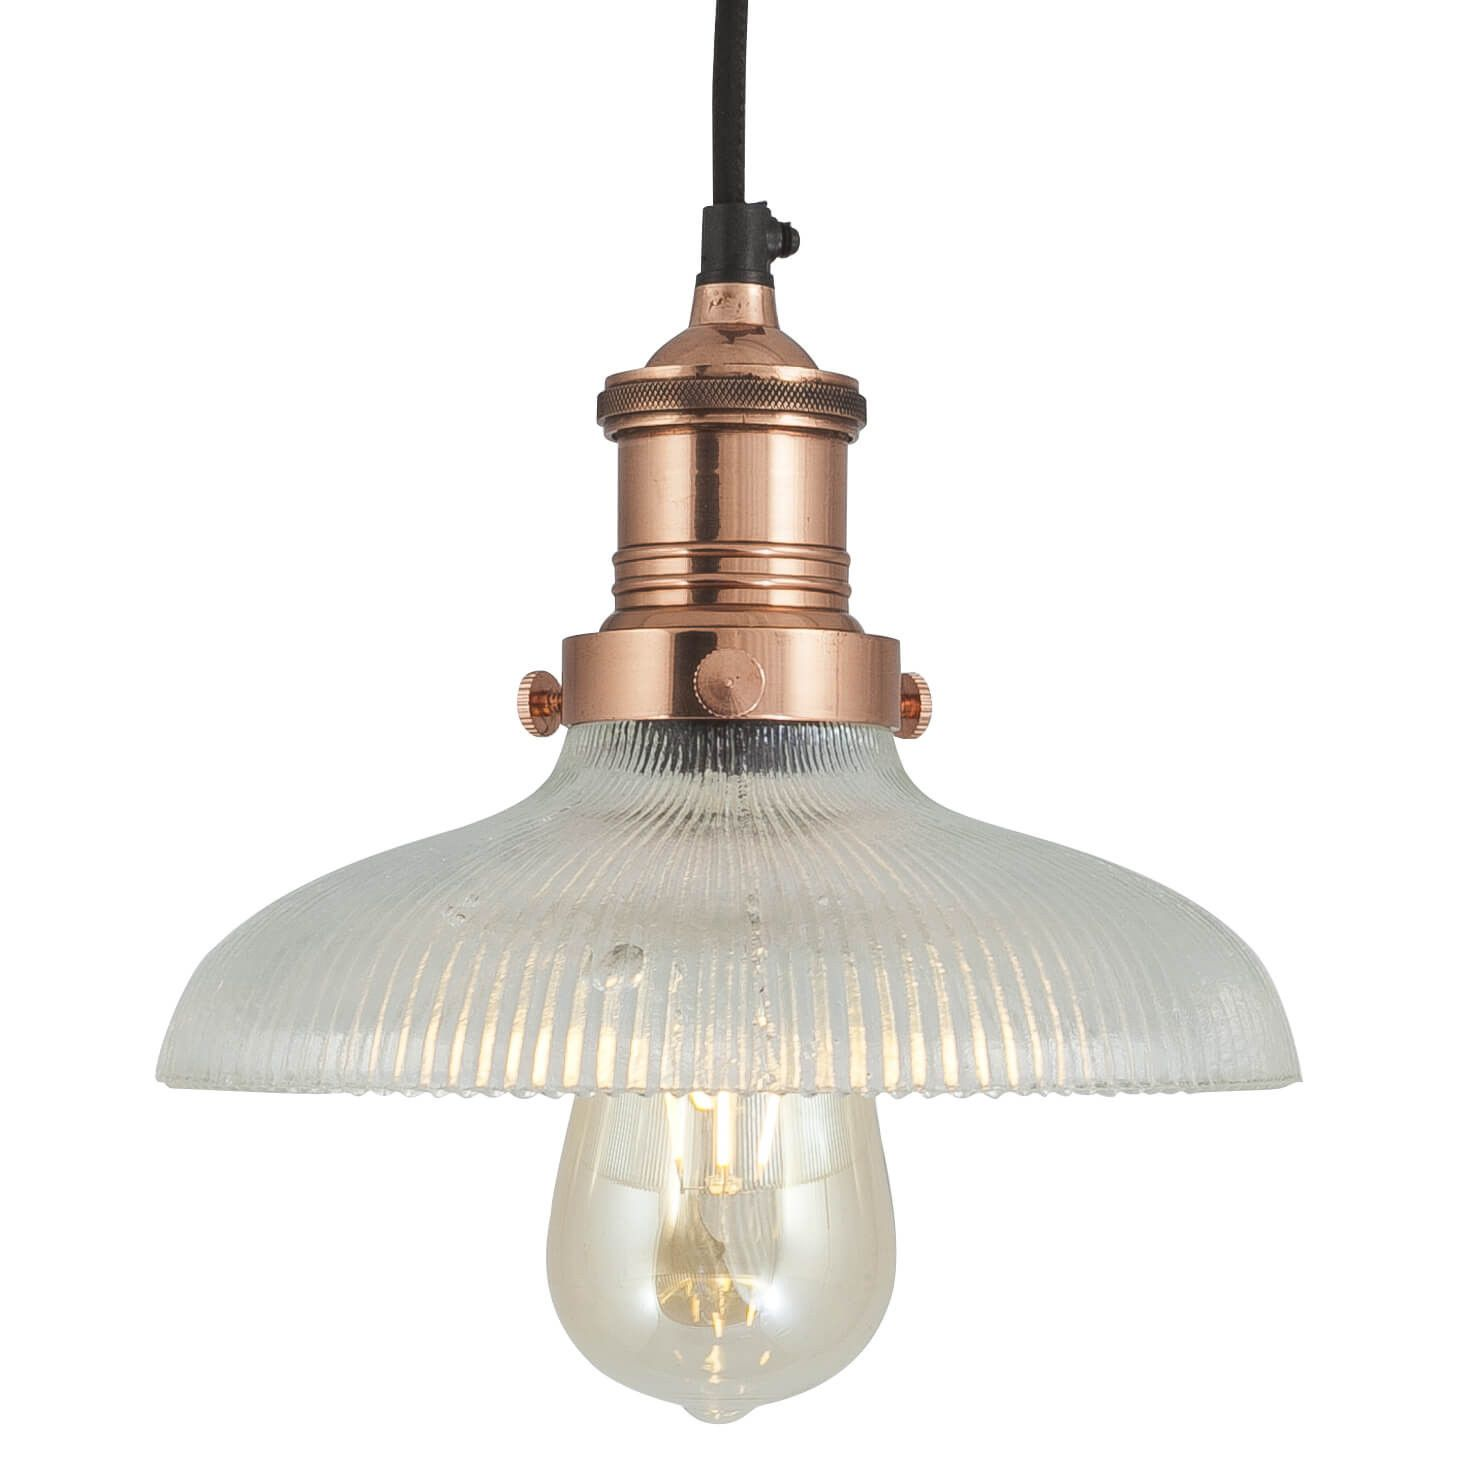 vintage style bathroom lighting. traditional vintage style bathroom lighting industville vintage style bathroom lighting i